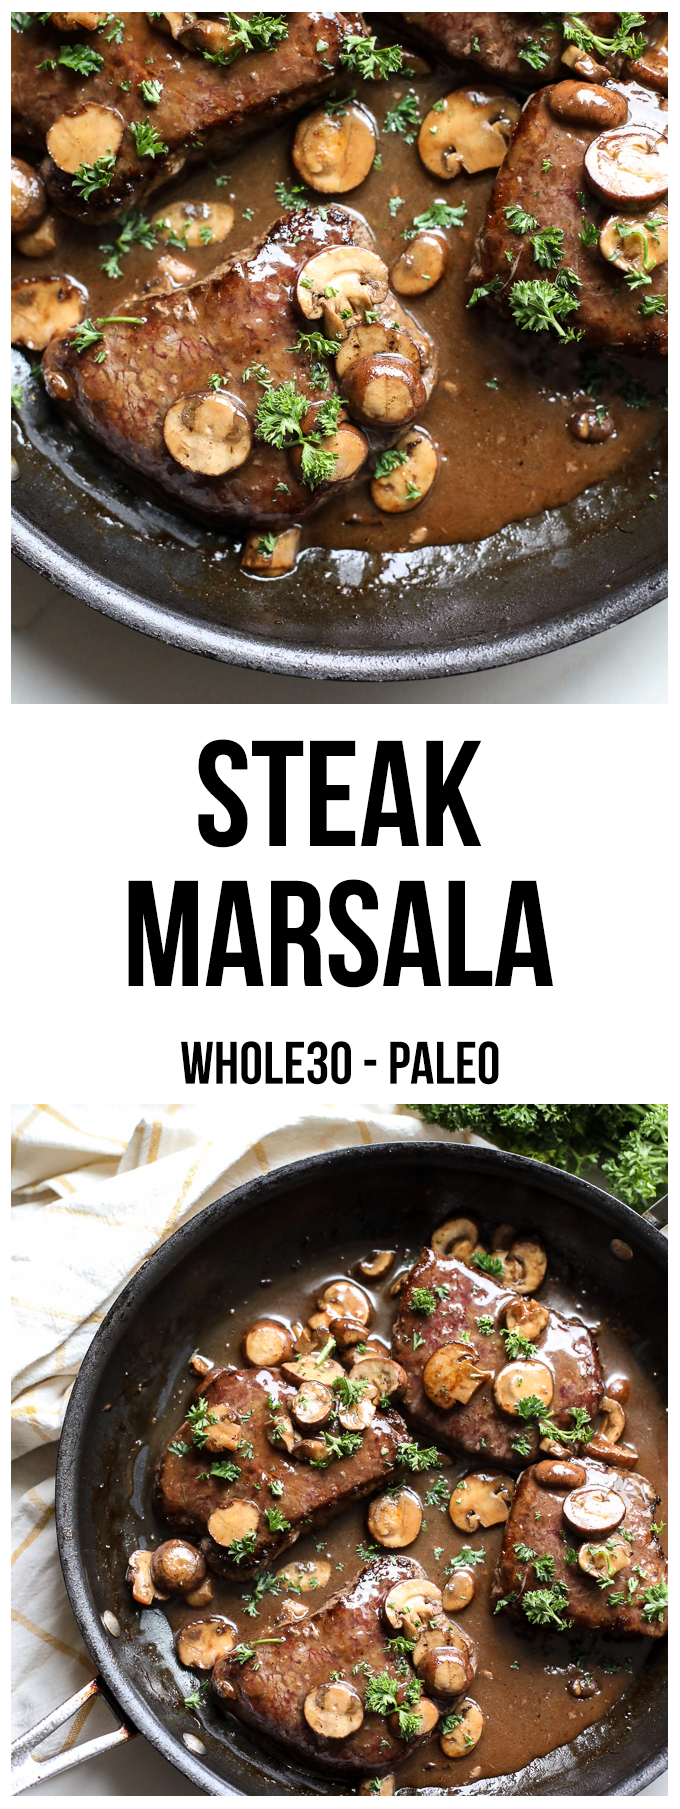 This Steak Marsala is whole30 compliant and a great and easy way to cook steak on a weeknight!